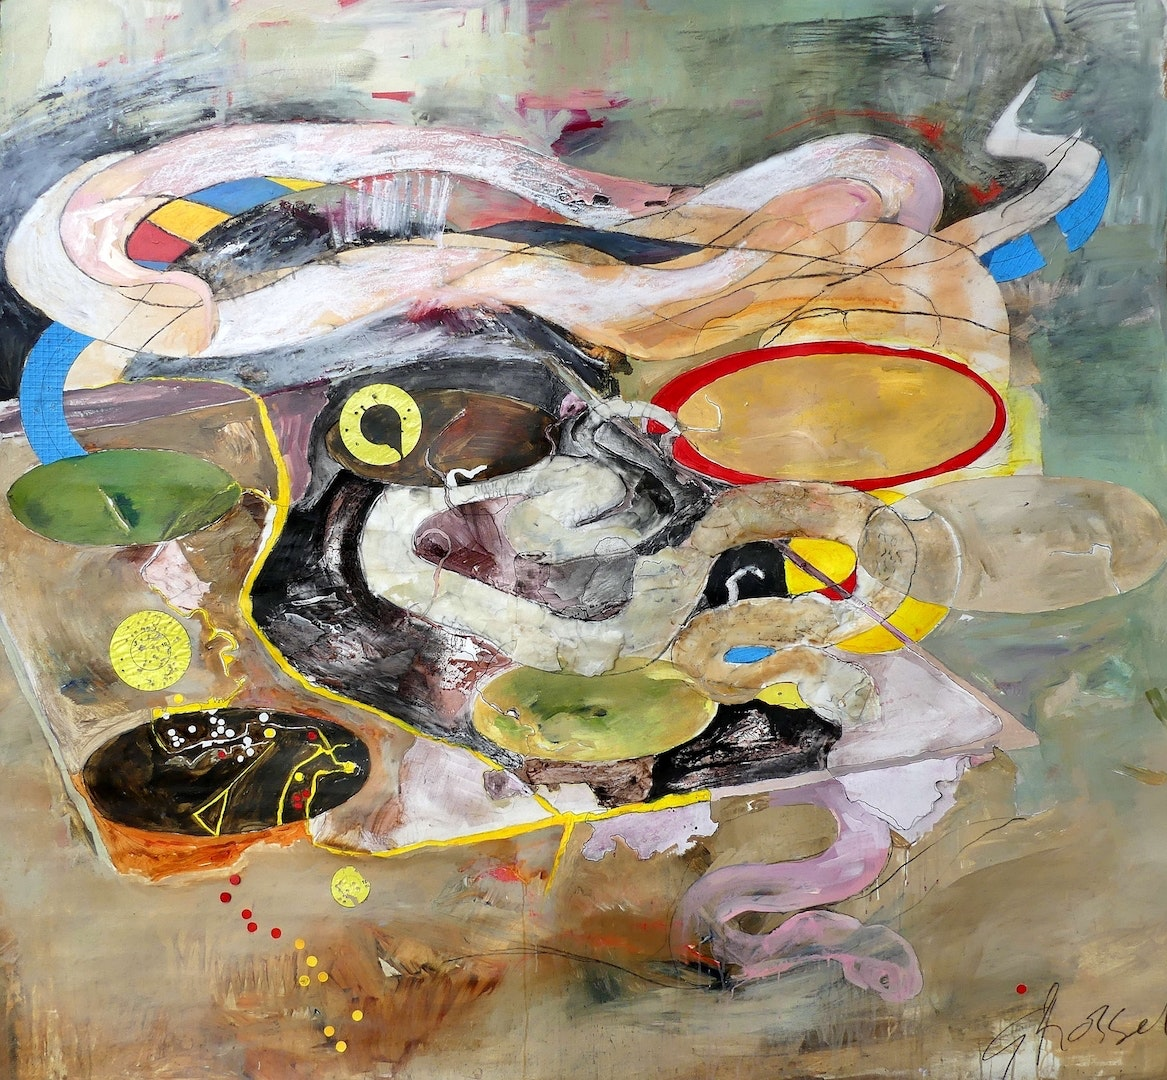 'Snakes and Ladders', Gillian Rosselli, Collage, wax, acrylic, charcoal, 218 x 227 cm